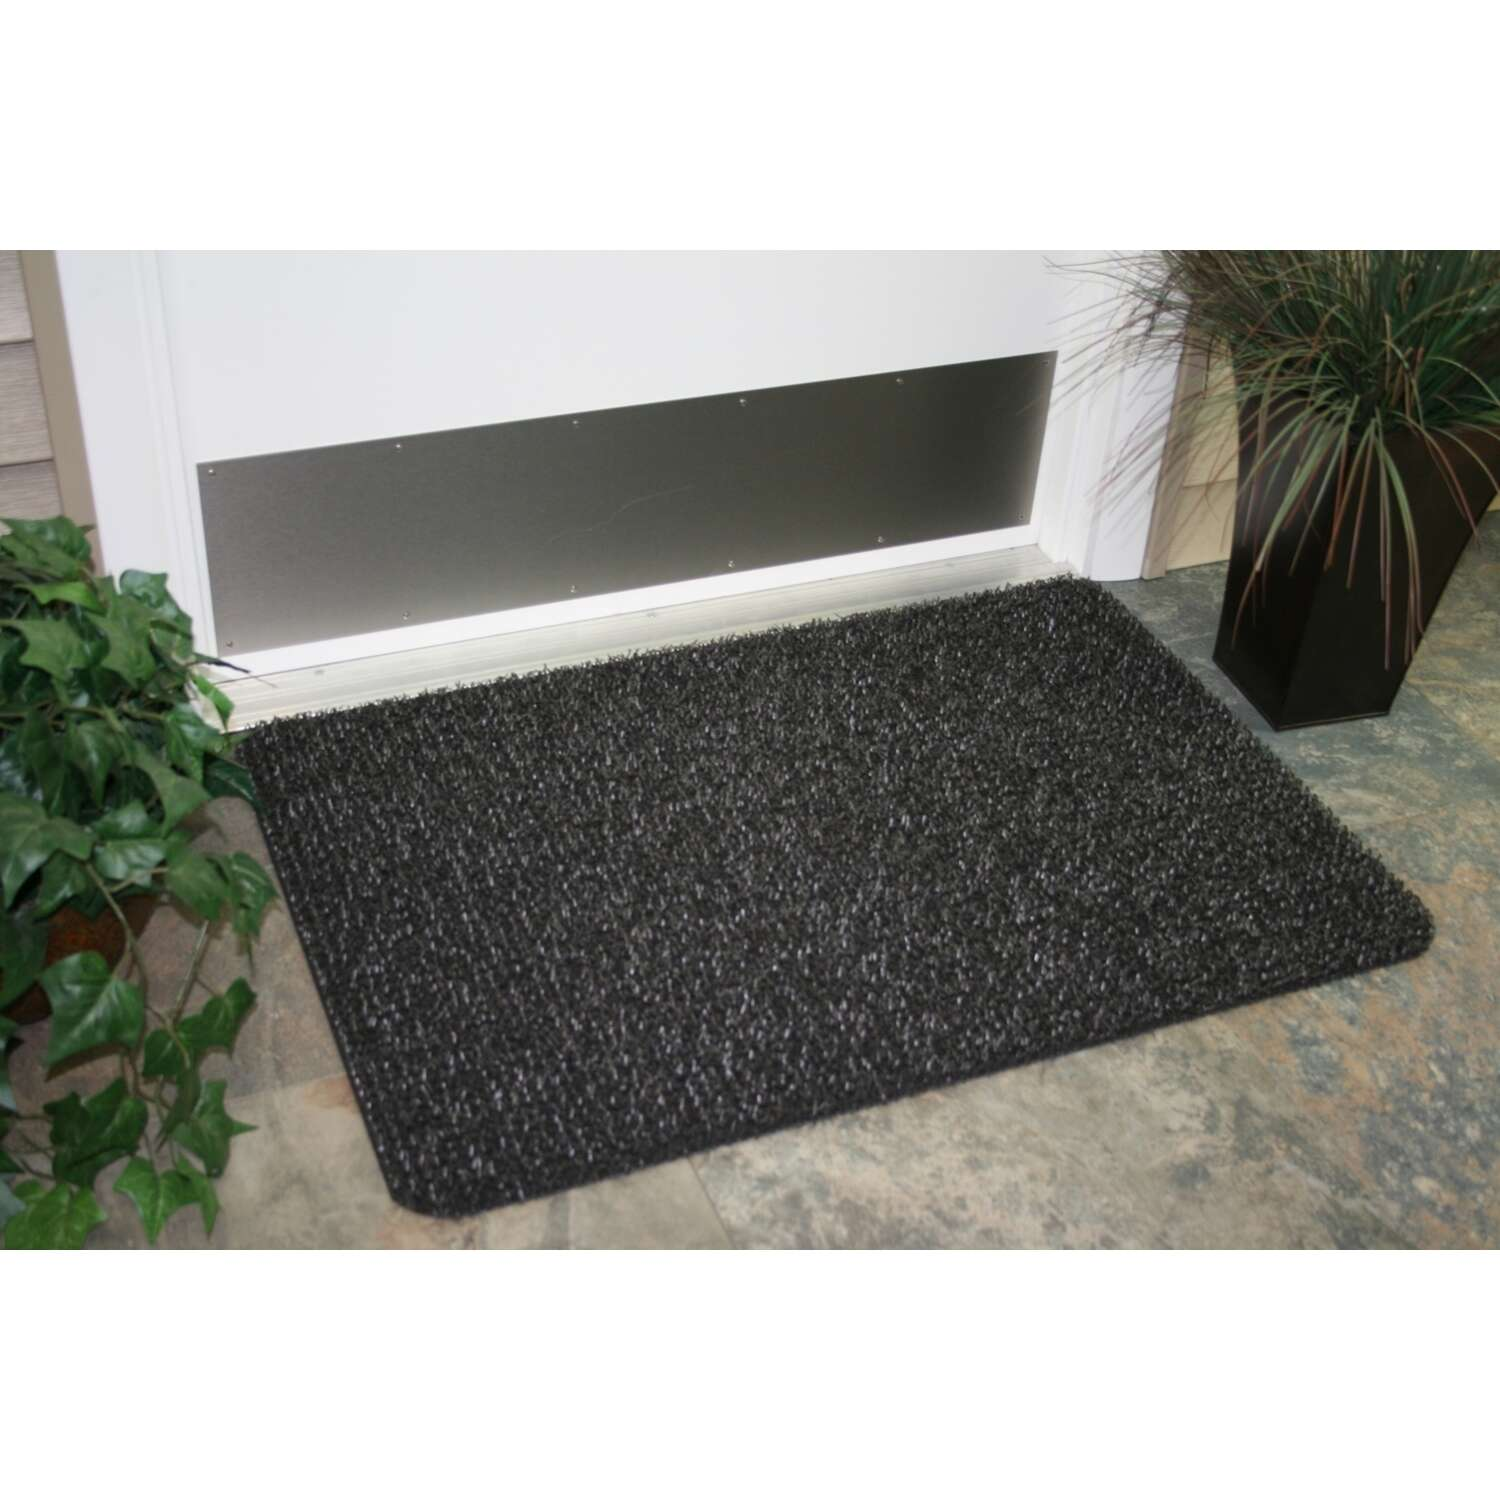 GrassWorx  Gray  Polyethylene  Nonslip Door Mat  30 in. L x 18 in. W